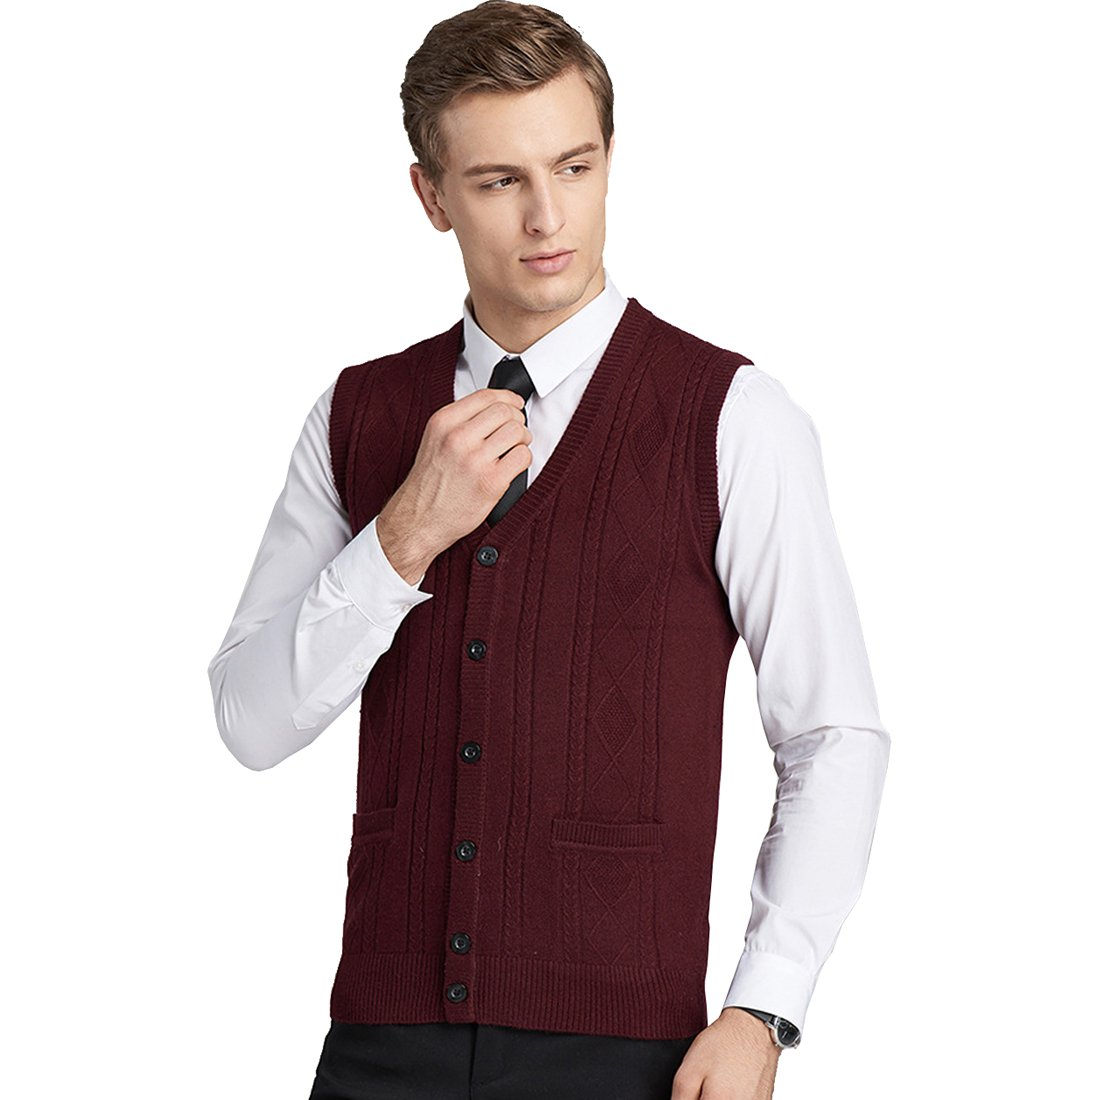 Autumn Winter Wool Vest Male Cardigan Knitting Vest Sleeveless Sweater Waistcoat